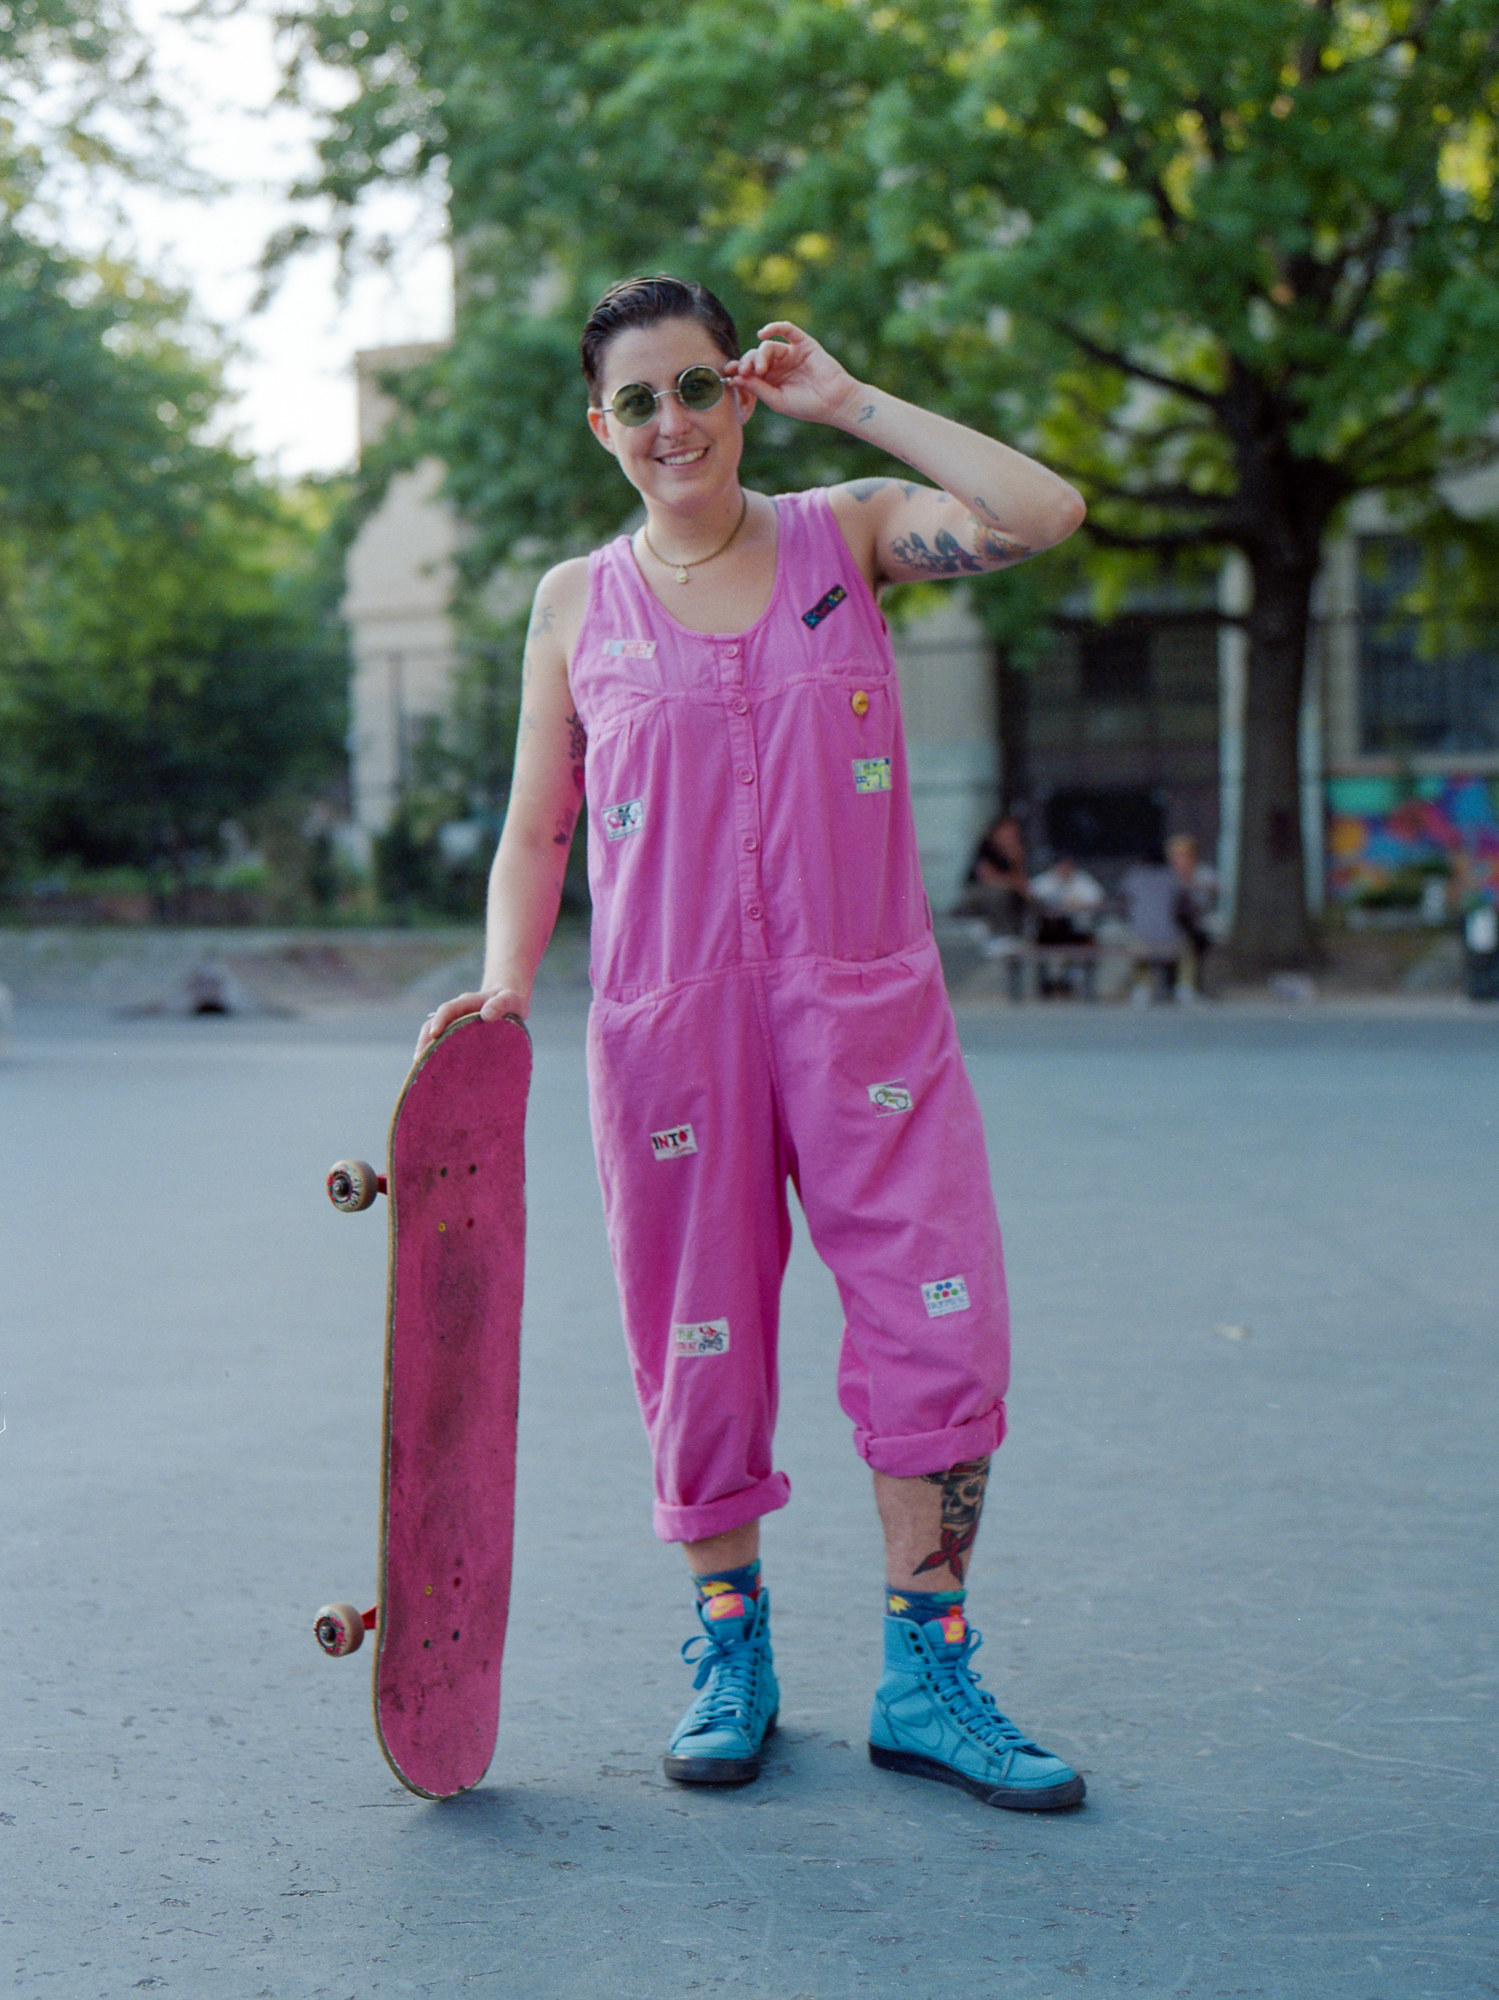 A woman in an all pink romper with blue sneakers and a skateboard that is painted pink